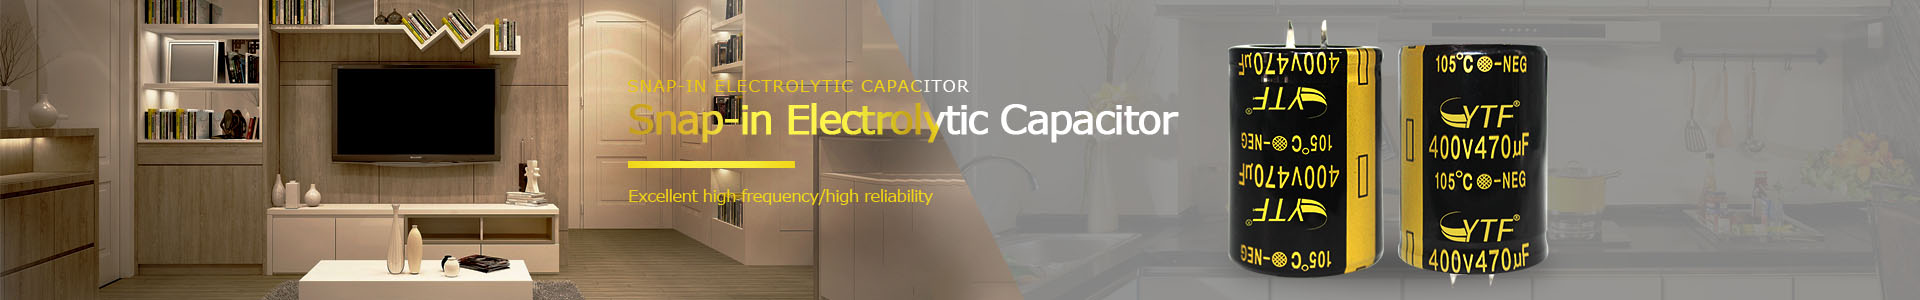 Audio Snap-in Aluminum Electrolytic 10000uf 100v Capacitor Price In India - Snap-in Electrolytic Capacitor